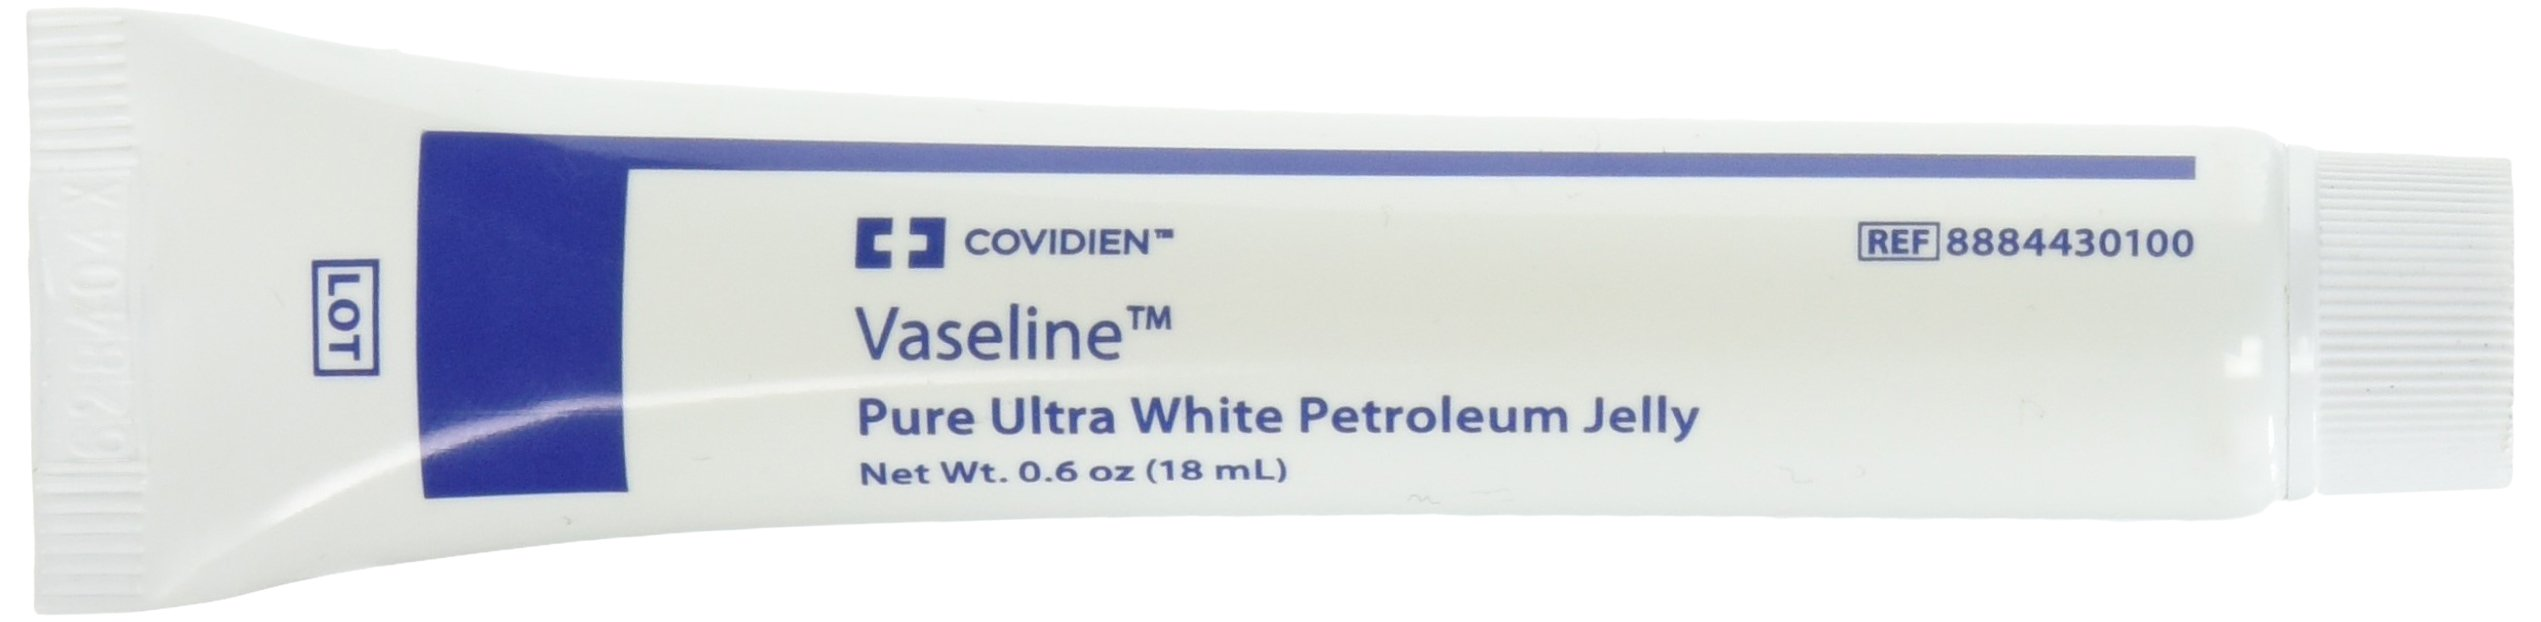 Covidien 8884430100 Vaseline Pure Ultra White Petroleum Jelly, 18 mL Capacity (Pack of 144) by COVIDIEN (Image #1)